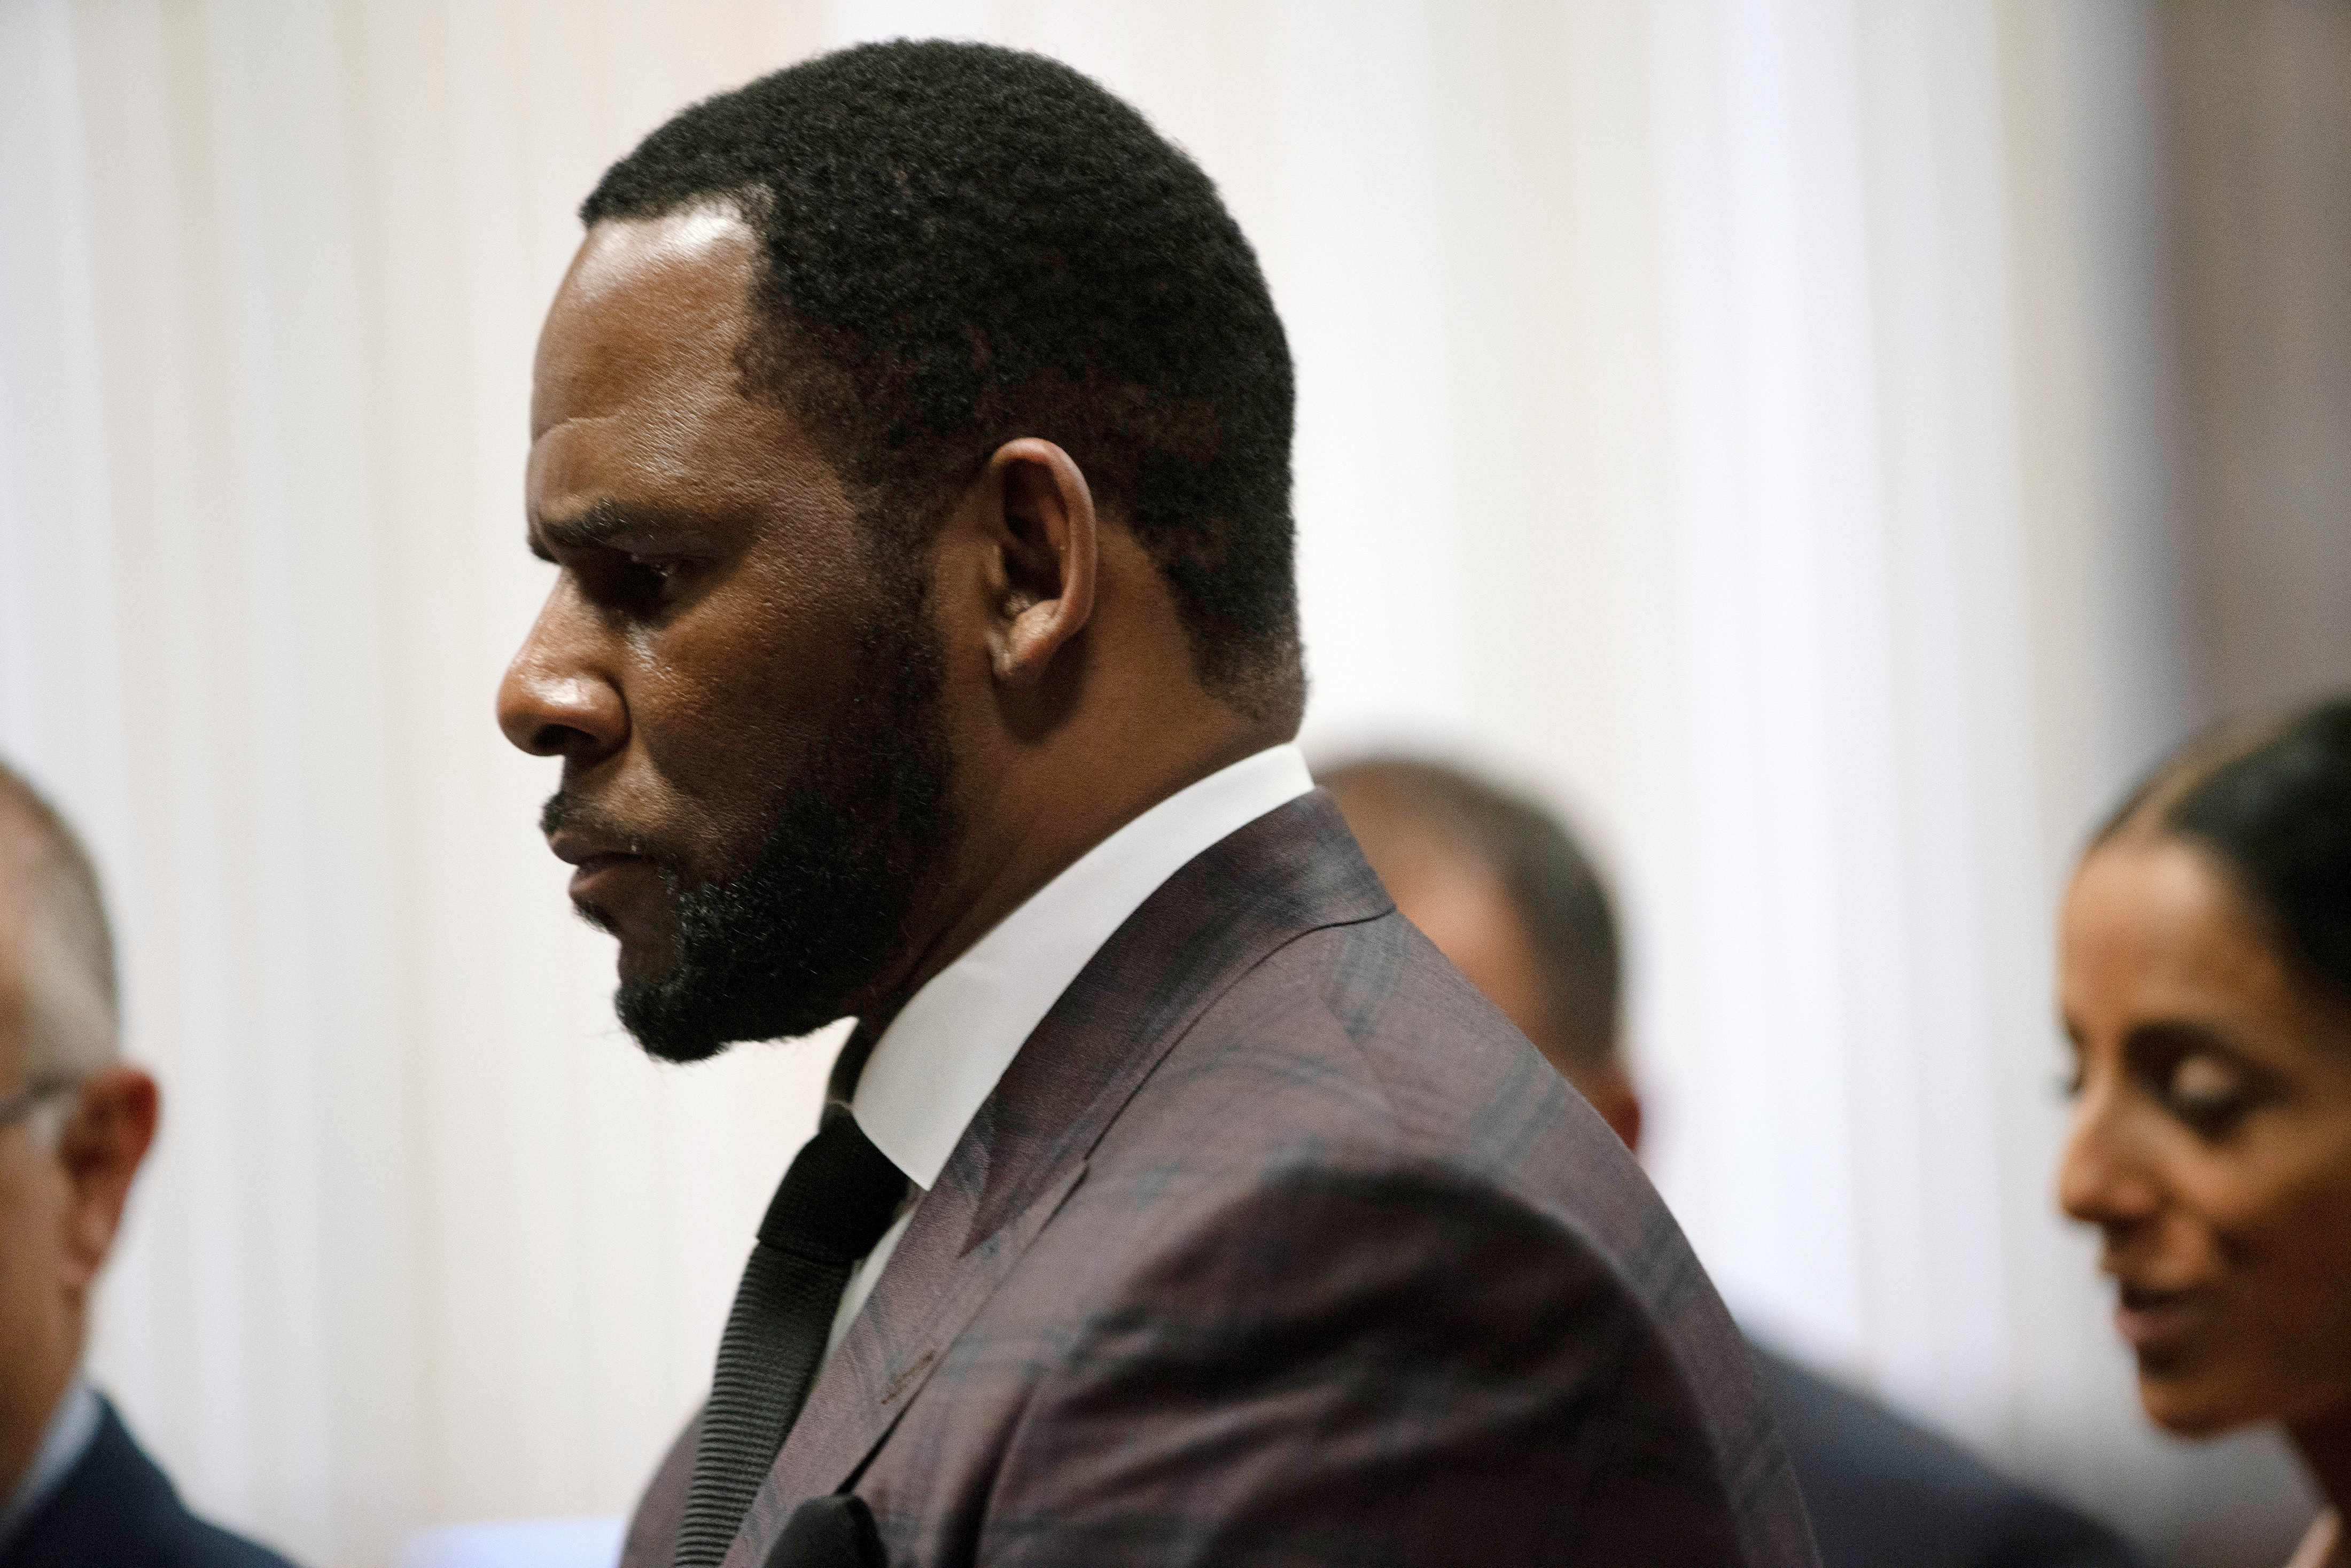 R. Kelly appears for a hearing at Leighton Criminal Court Building in Chicago, Illinois, U.S., June 26, 2019. E. Jason Wambsgans/Chicago Tribune/Pool via REUTERS